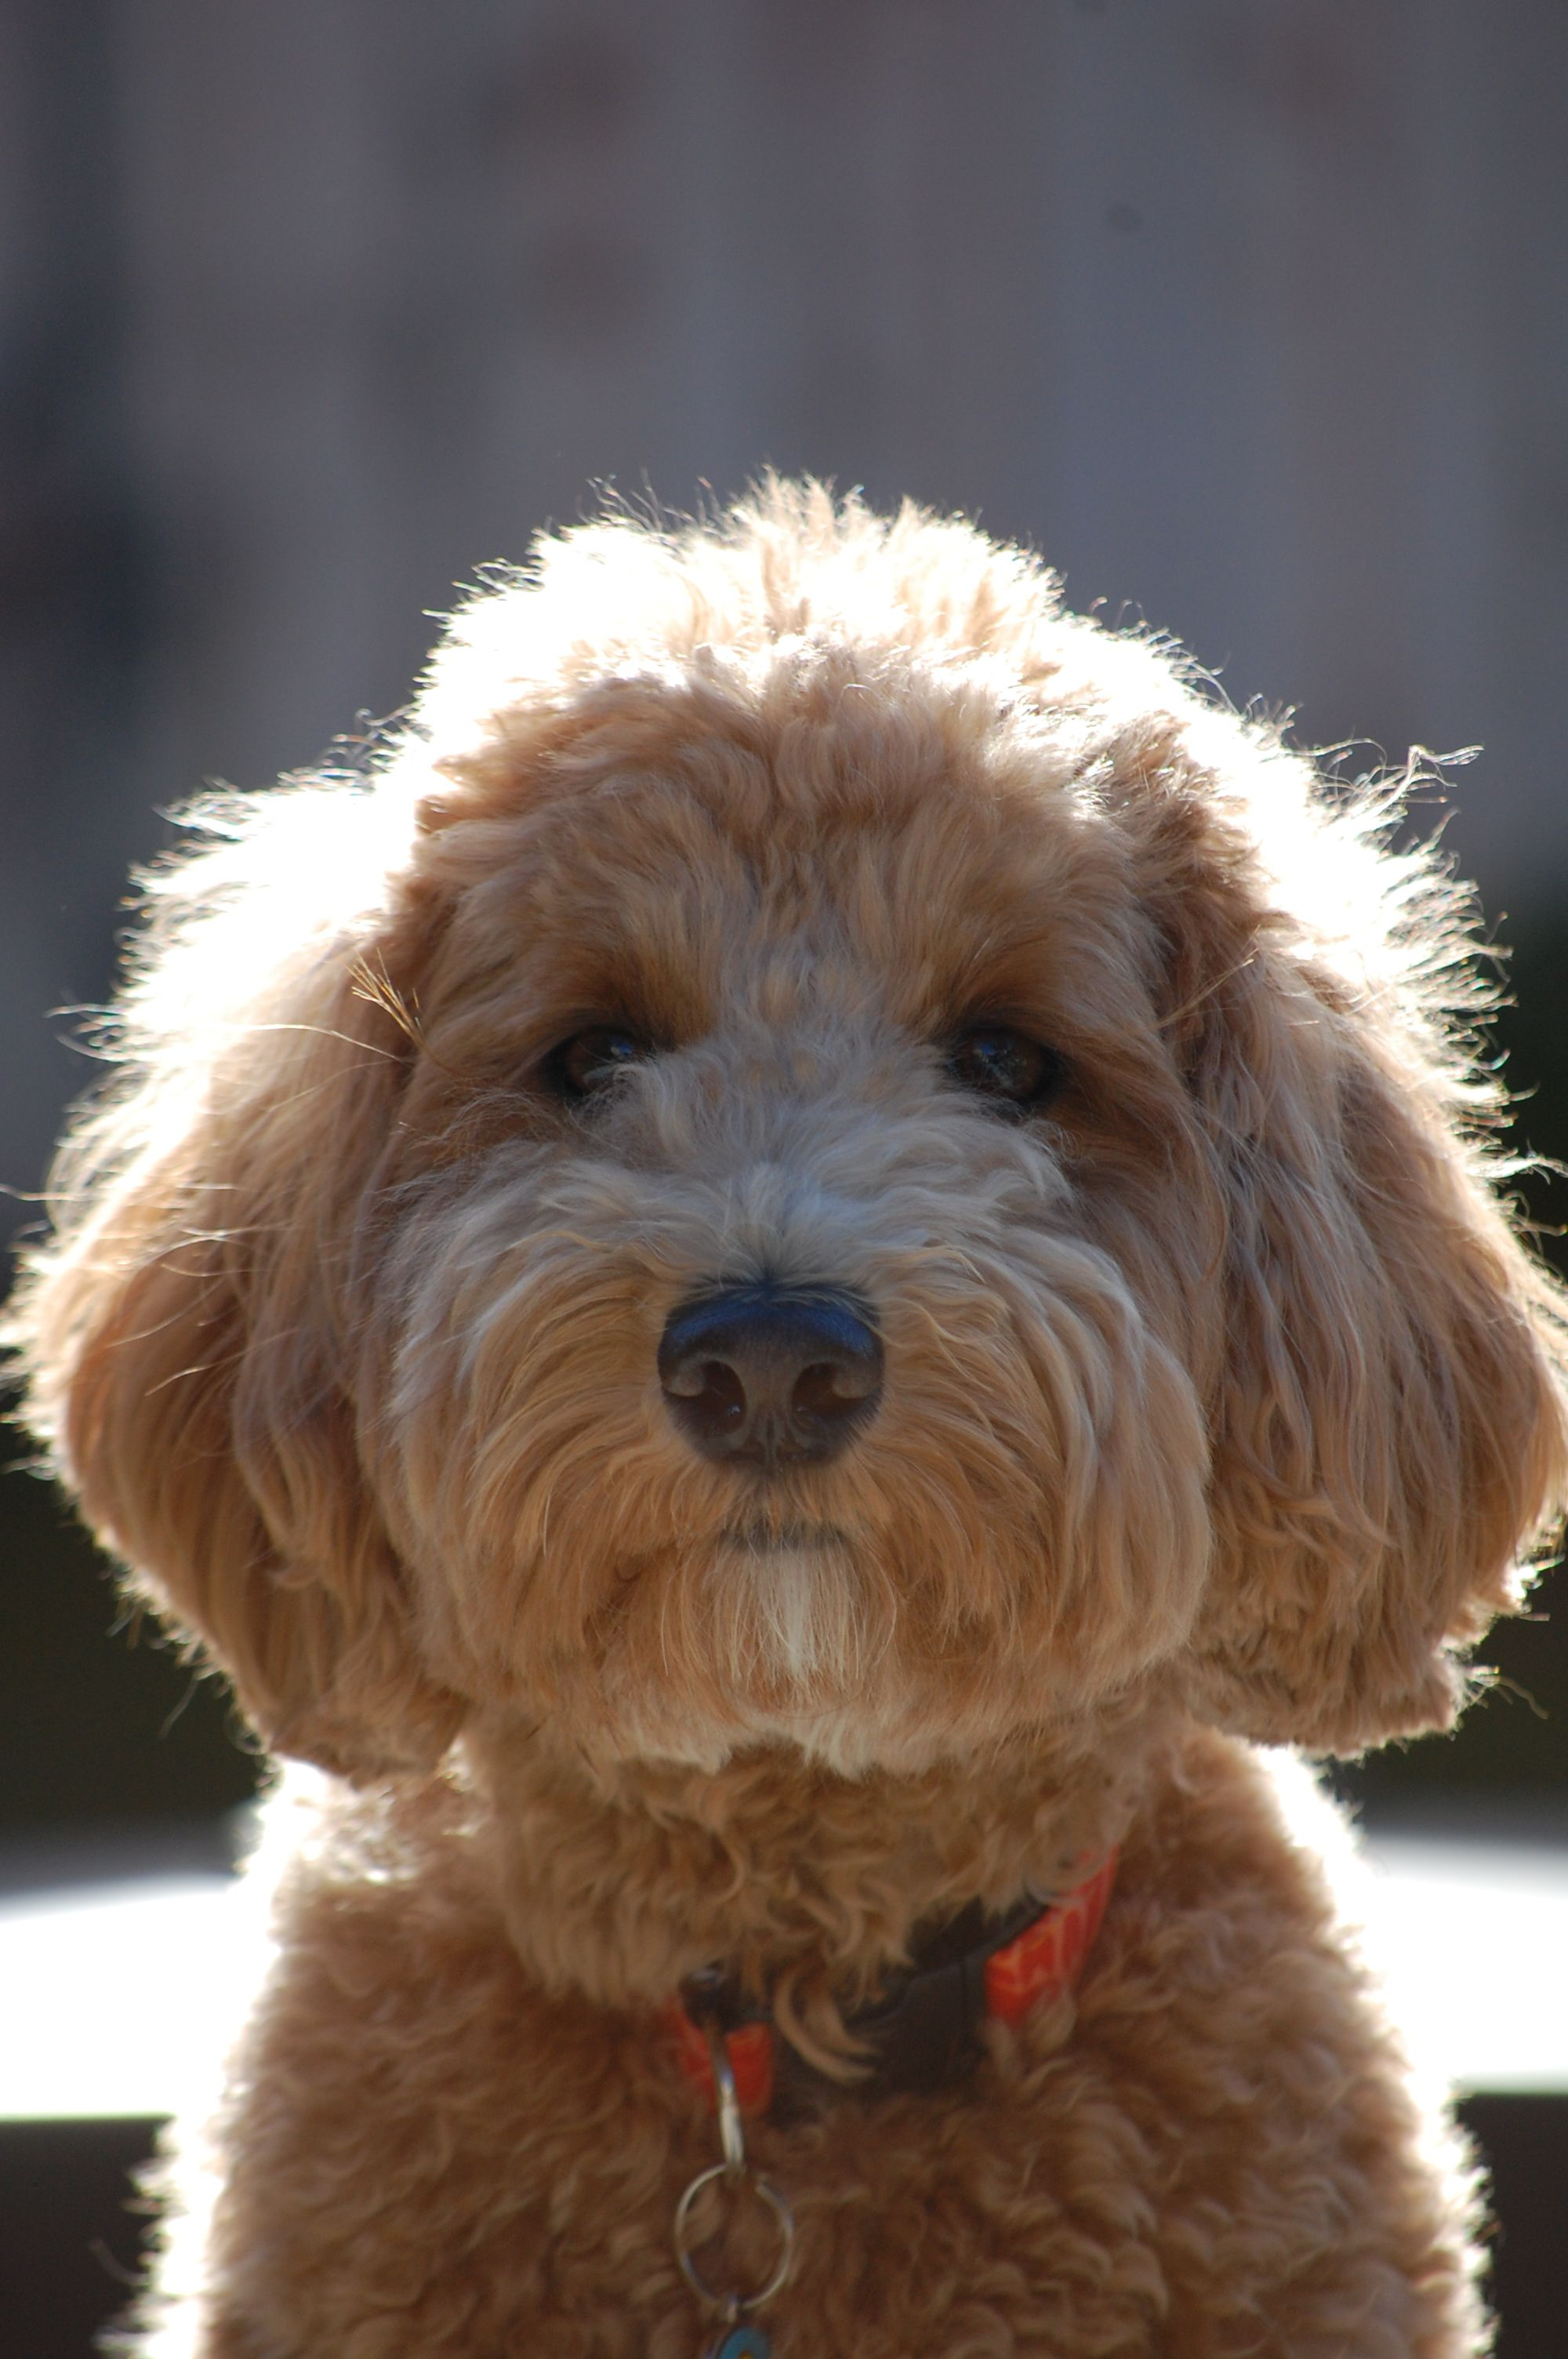 Goldendoodle Faithfuldoodles Lulu One Of Zoey S Puppies Christina Parsons Maria Neves Fowler Goldendoodle Dogs Dog Grooming